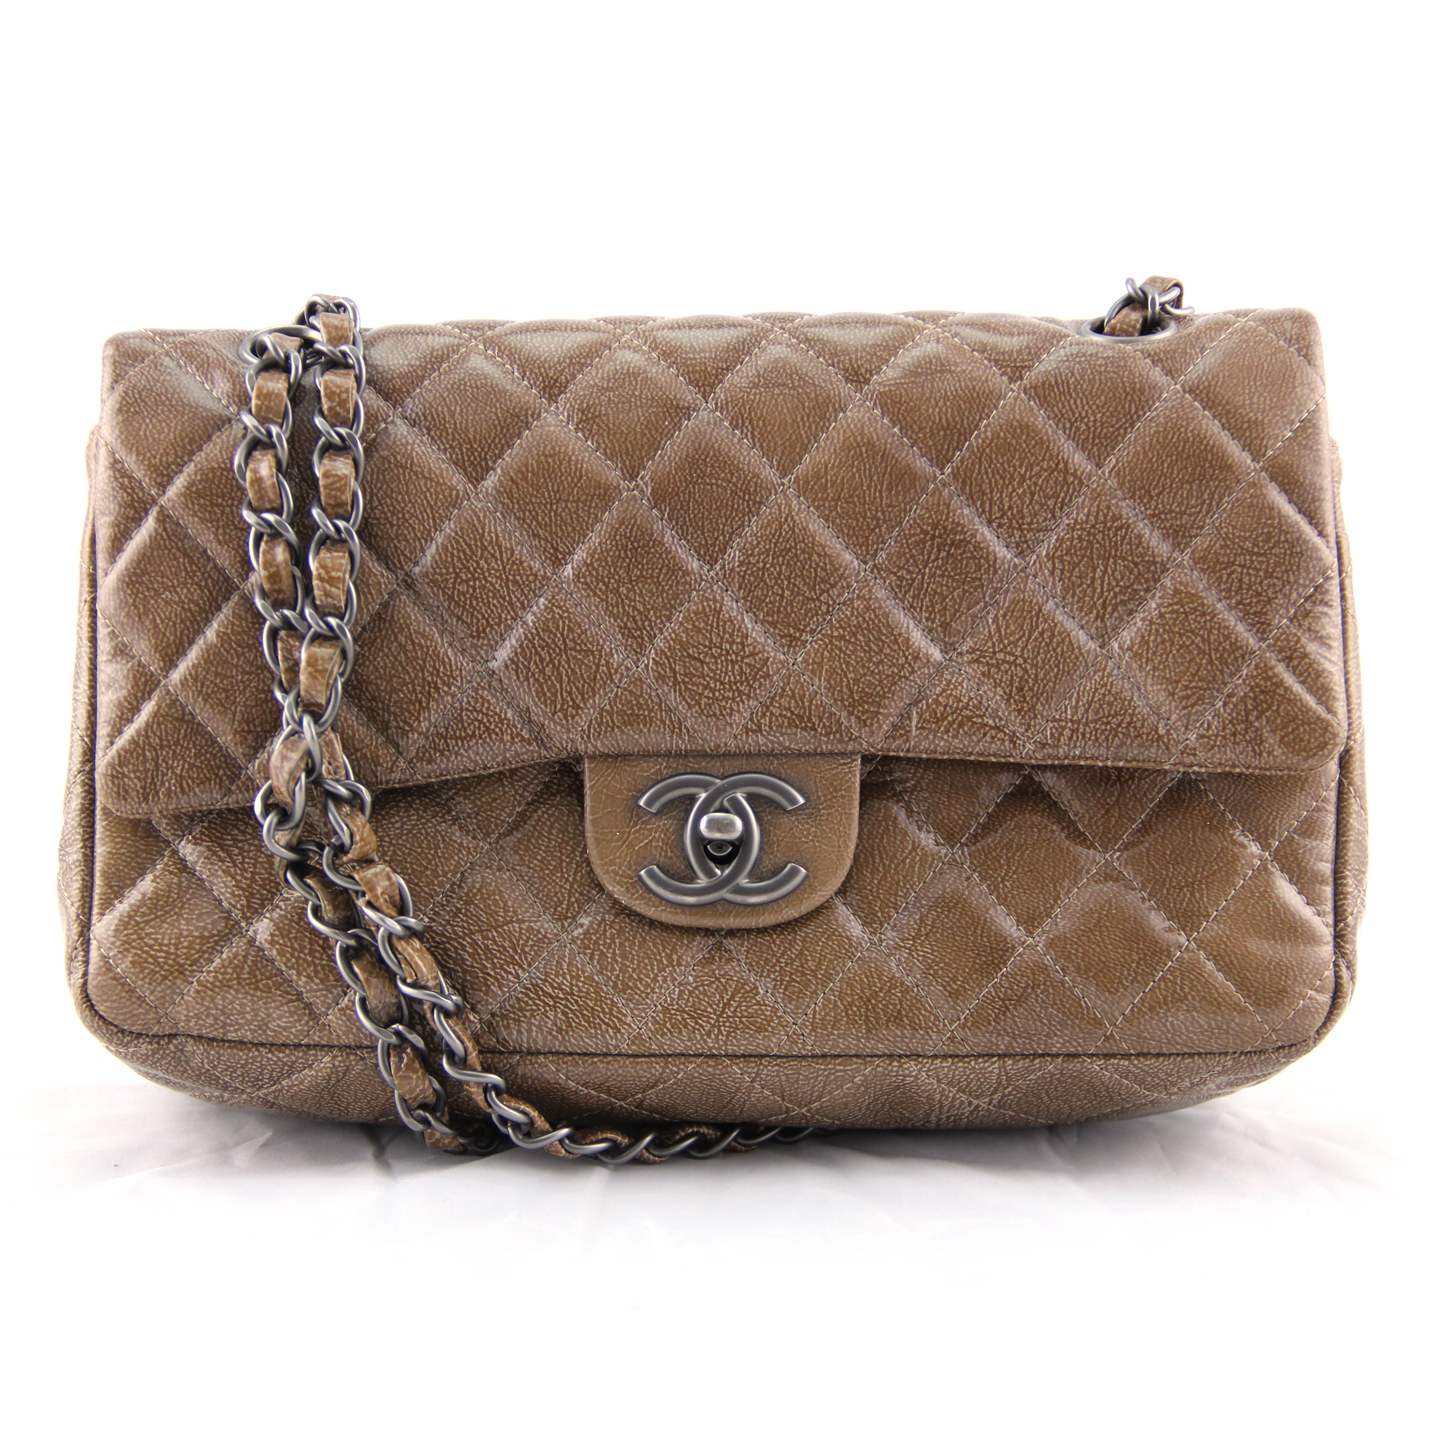 Chanel Patent Leather Quilted Classic Medium Flap Bag